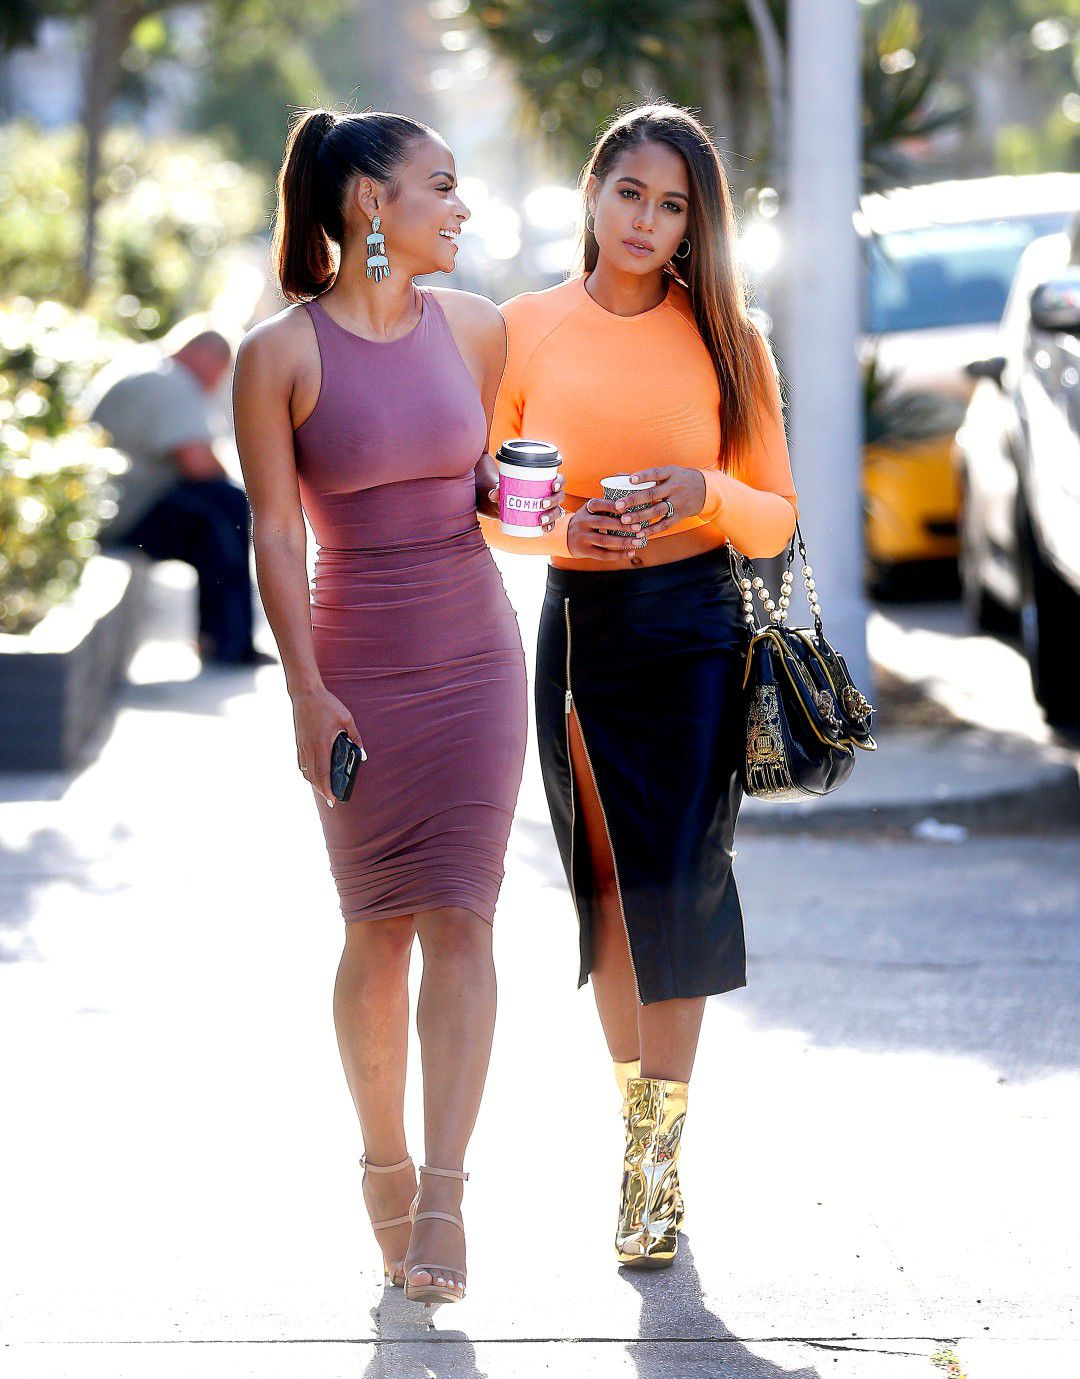 christina-milian-pokies-in-tight-dress-while-out-in-west-hollywood-6253